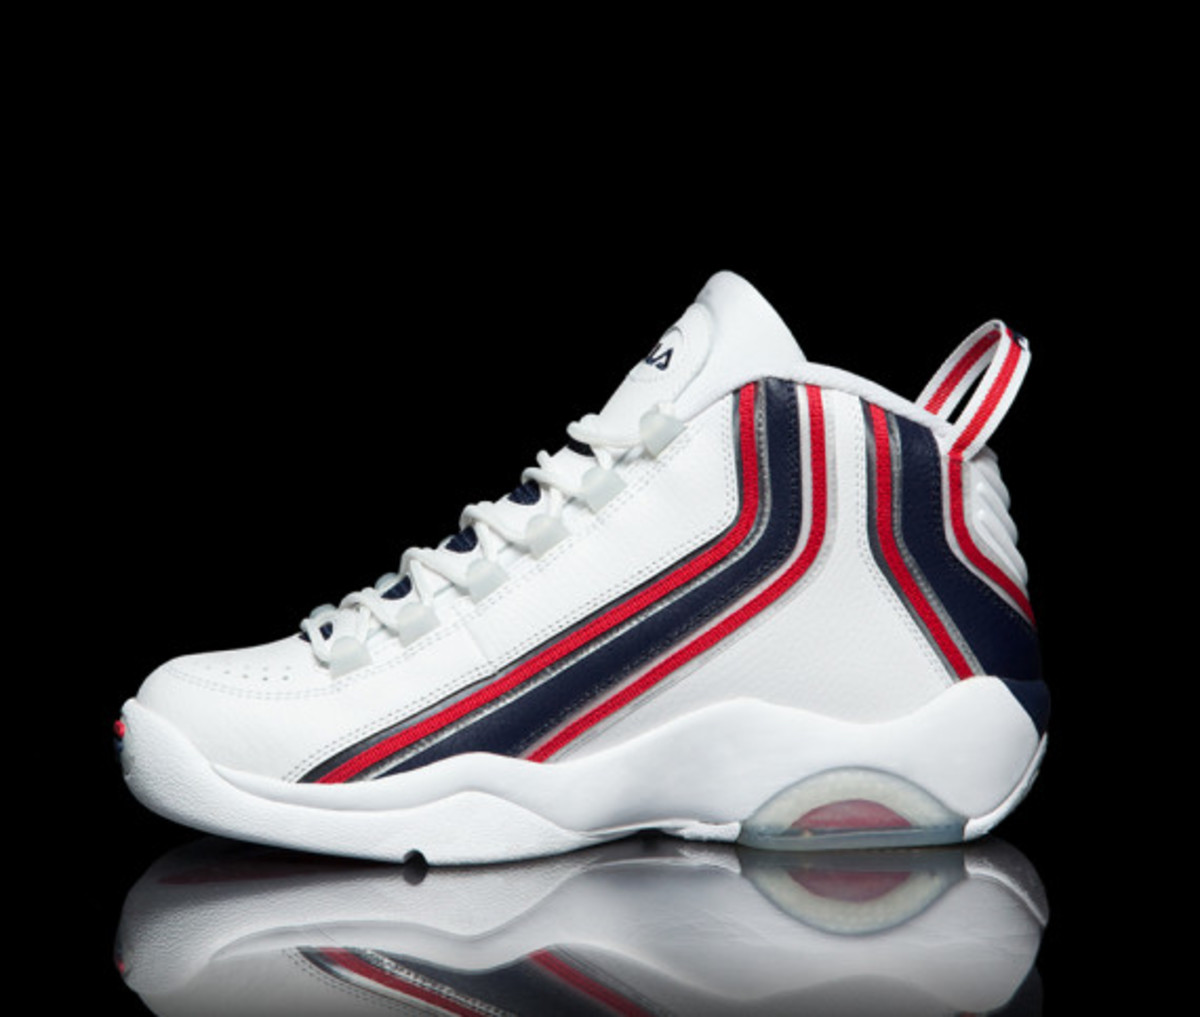 fila-the-stack-2-release-info-02